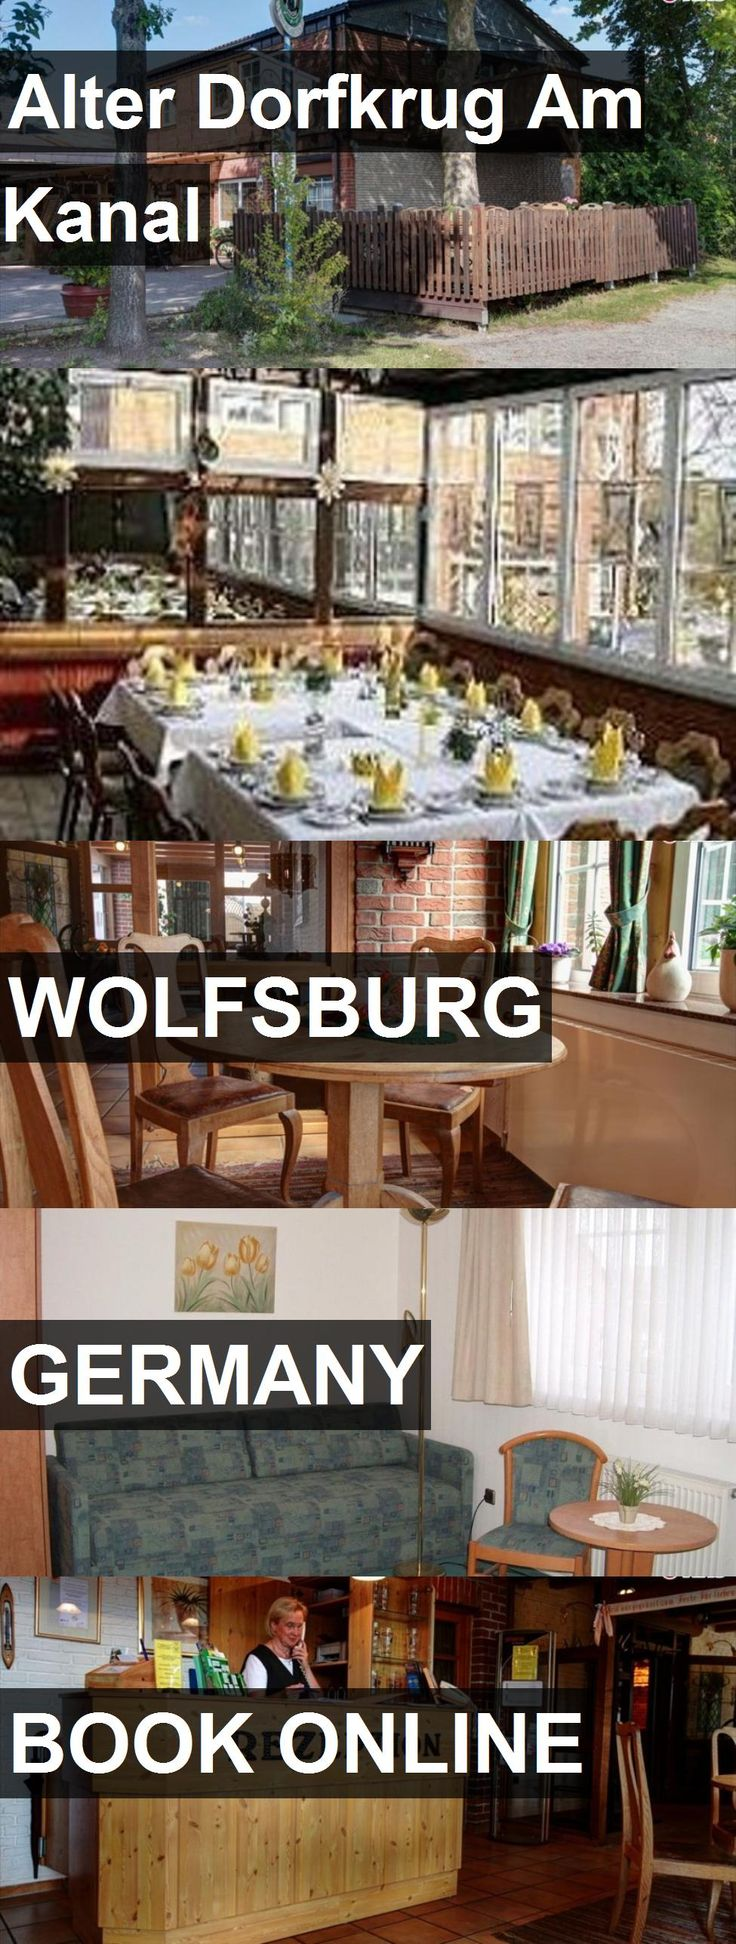 Hotel Alter Dorfkrug Am Kanal in Wolfsburg, Germany. For more information, photos, reviews and best prices please follow the link. #Germany #Wolfsburg #travel #vacation #hotel